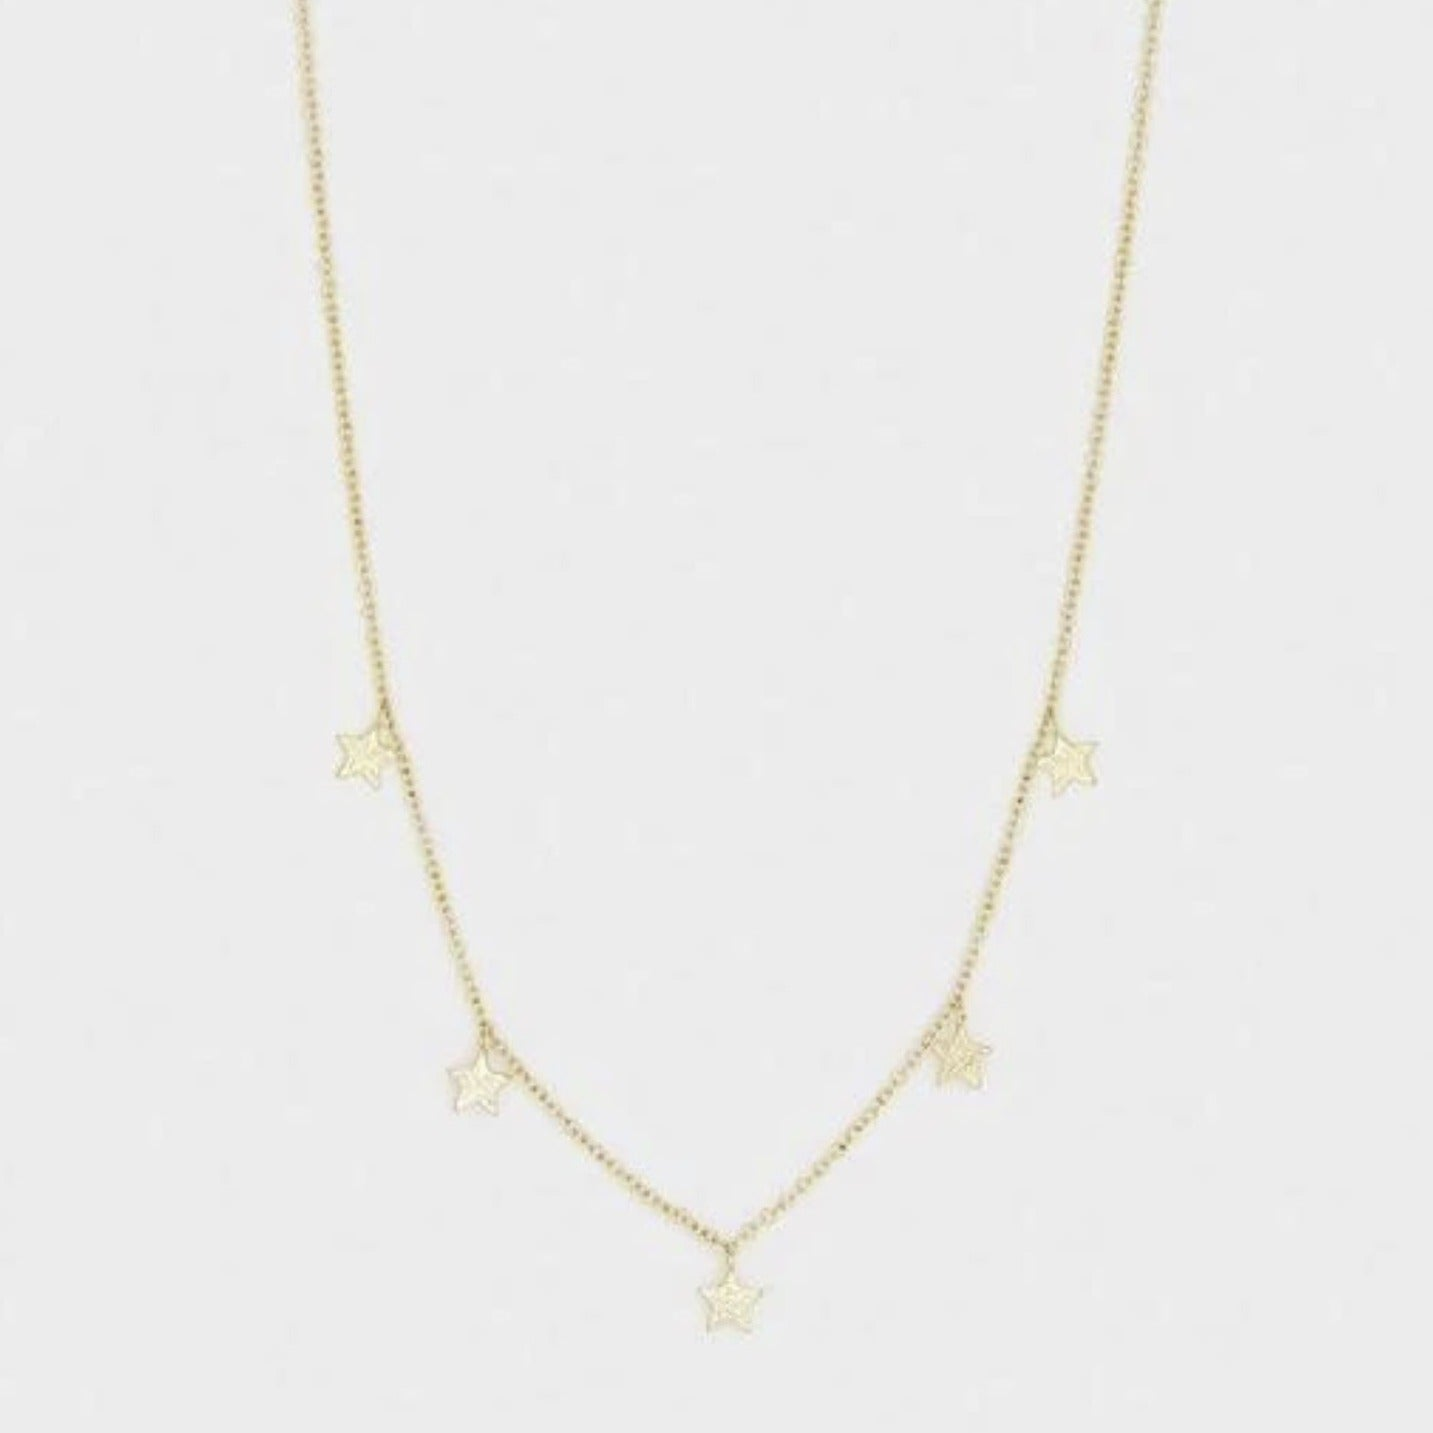 "Inspired by our best-selling Super Star collection. This delicate gold star necklace adds a celestial shine to any outfit. Adjustable Chain extends out to 16"" Charms are approximately 3/16"" in diameter Spring ring closure with silicone slide bead Available in 18k gold plated brass."